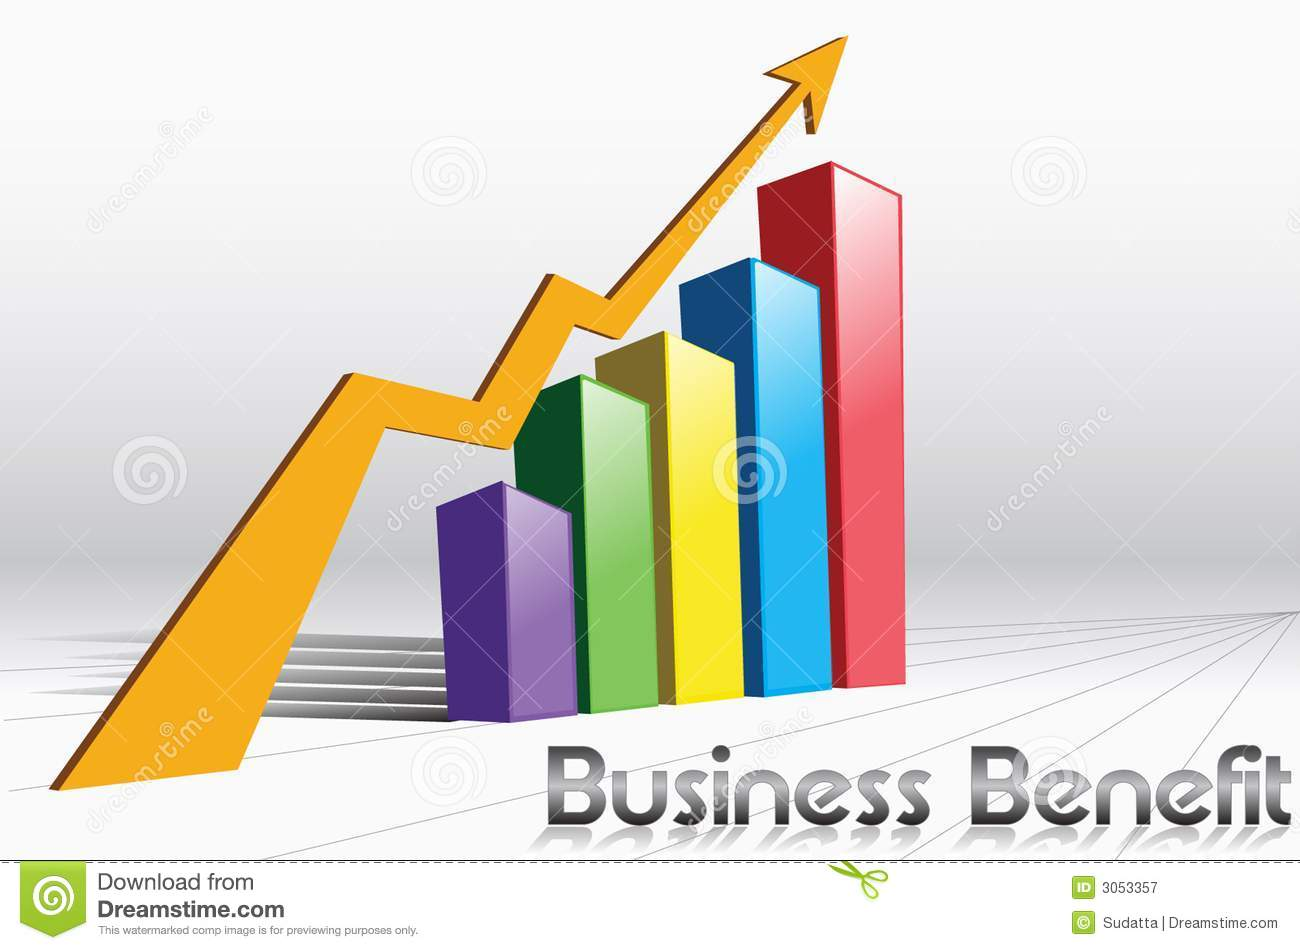 Business Benefit Royalty Free Stock Photography  Image: 3053357